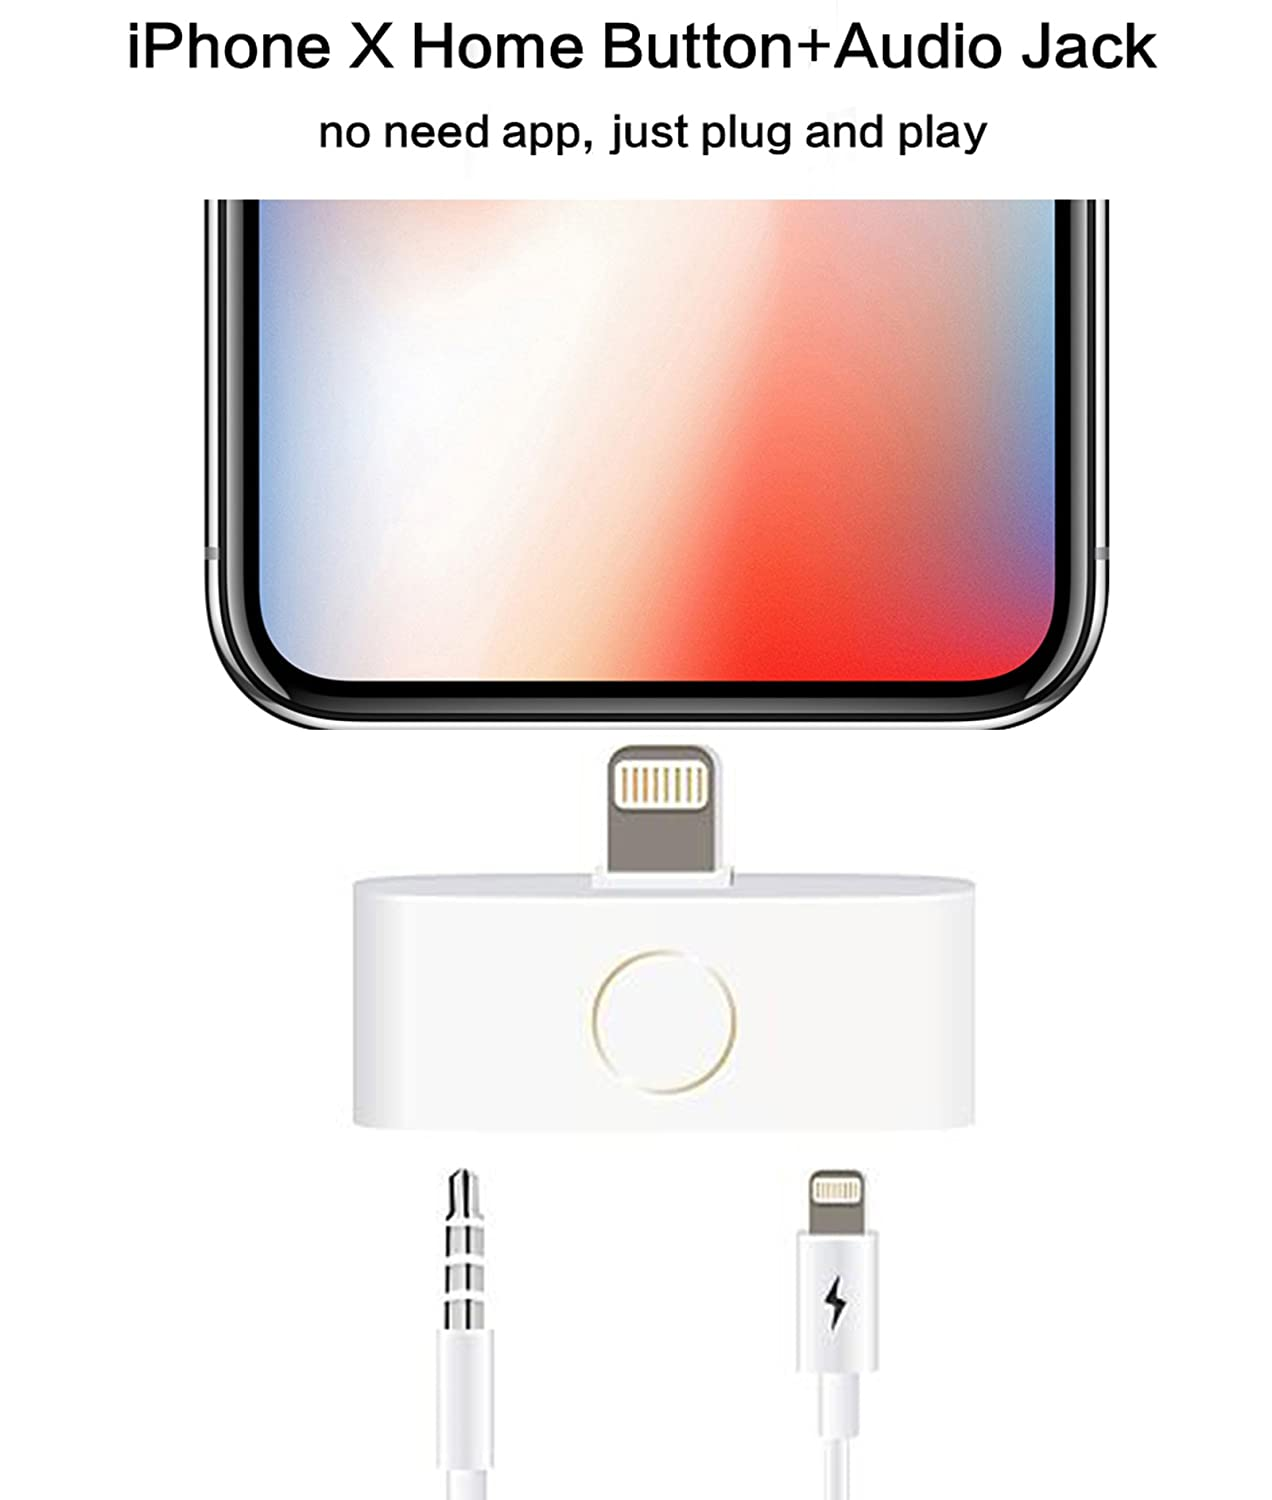 new style b84ed 933a0 MaximalPower iPhone X 8 7 6 5 Home Button and Audio Jack Adapter Support  Listen to Music and Charge at The Same time, No App Required (Home Button)